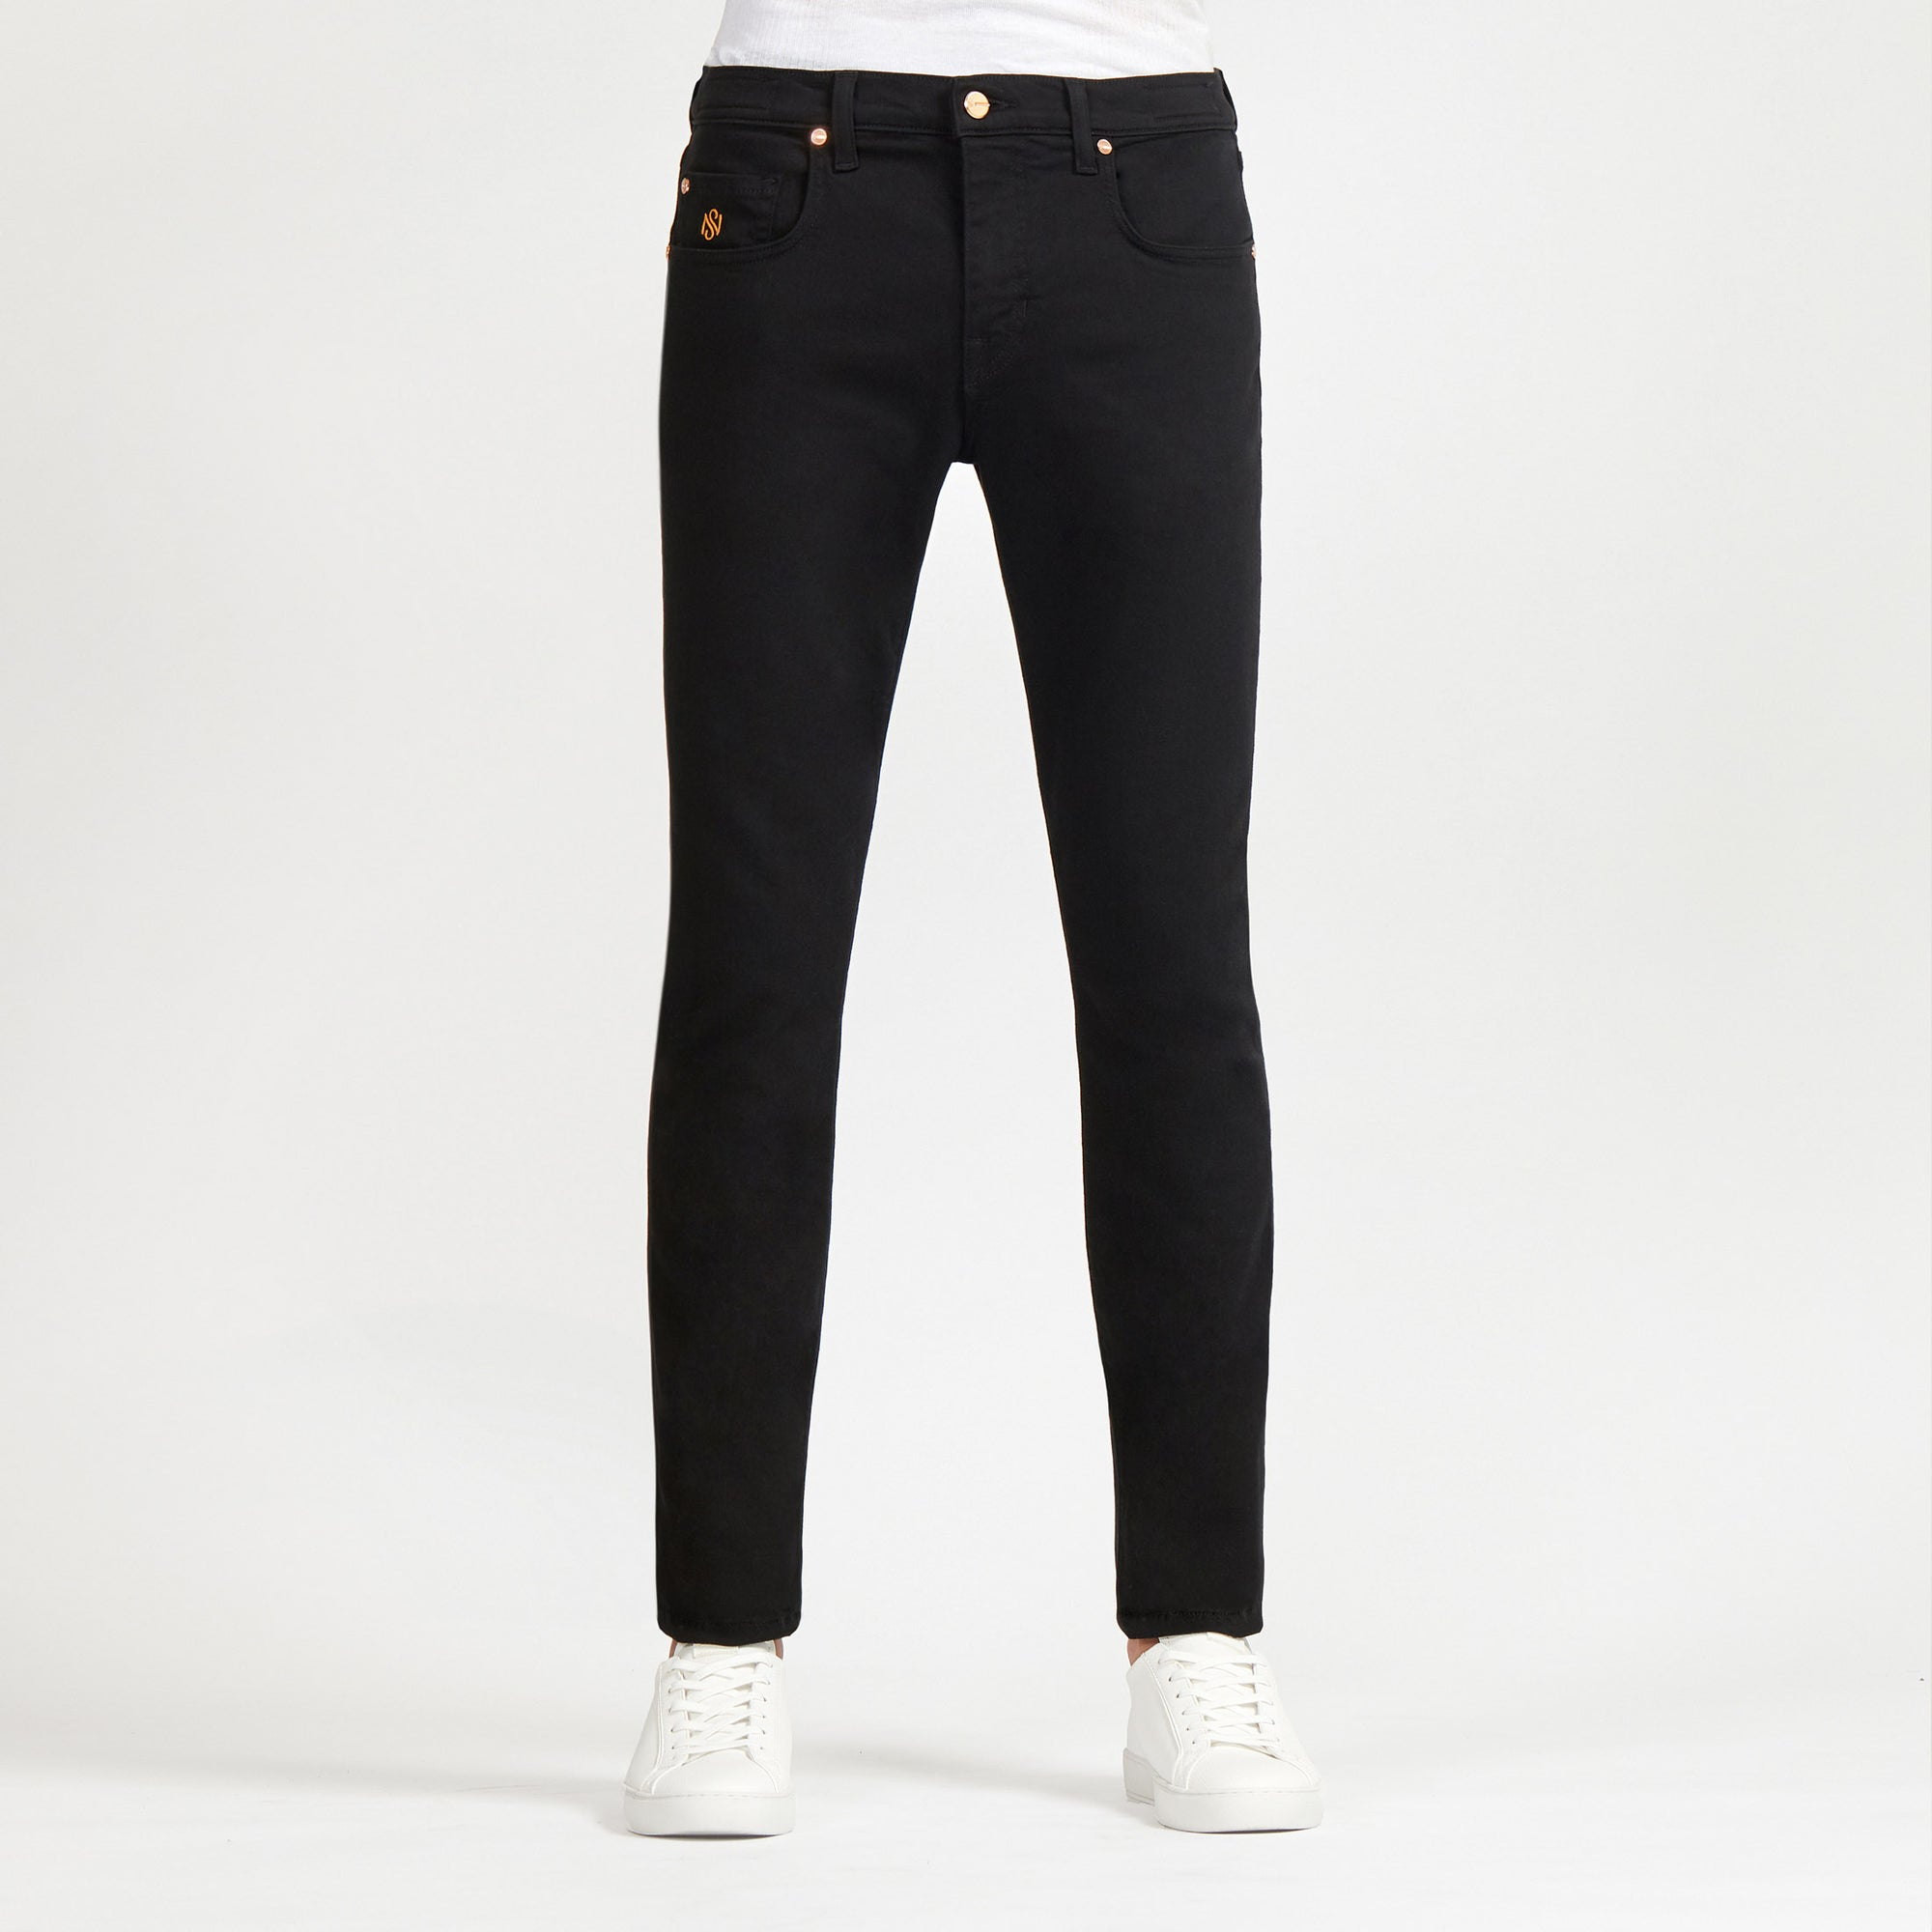 Men's Skinny Luxury Jeans Black Wash